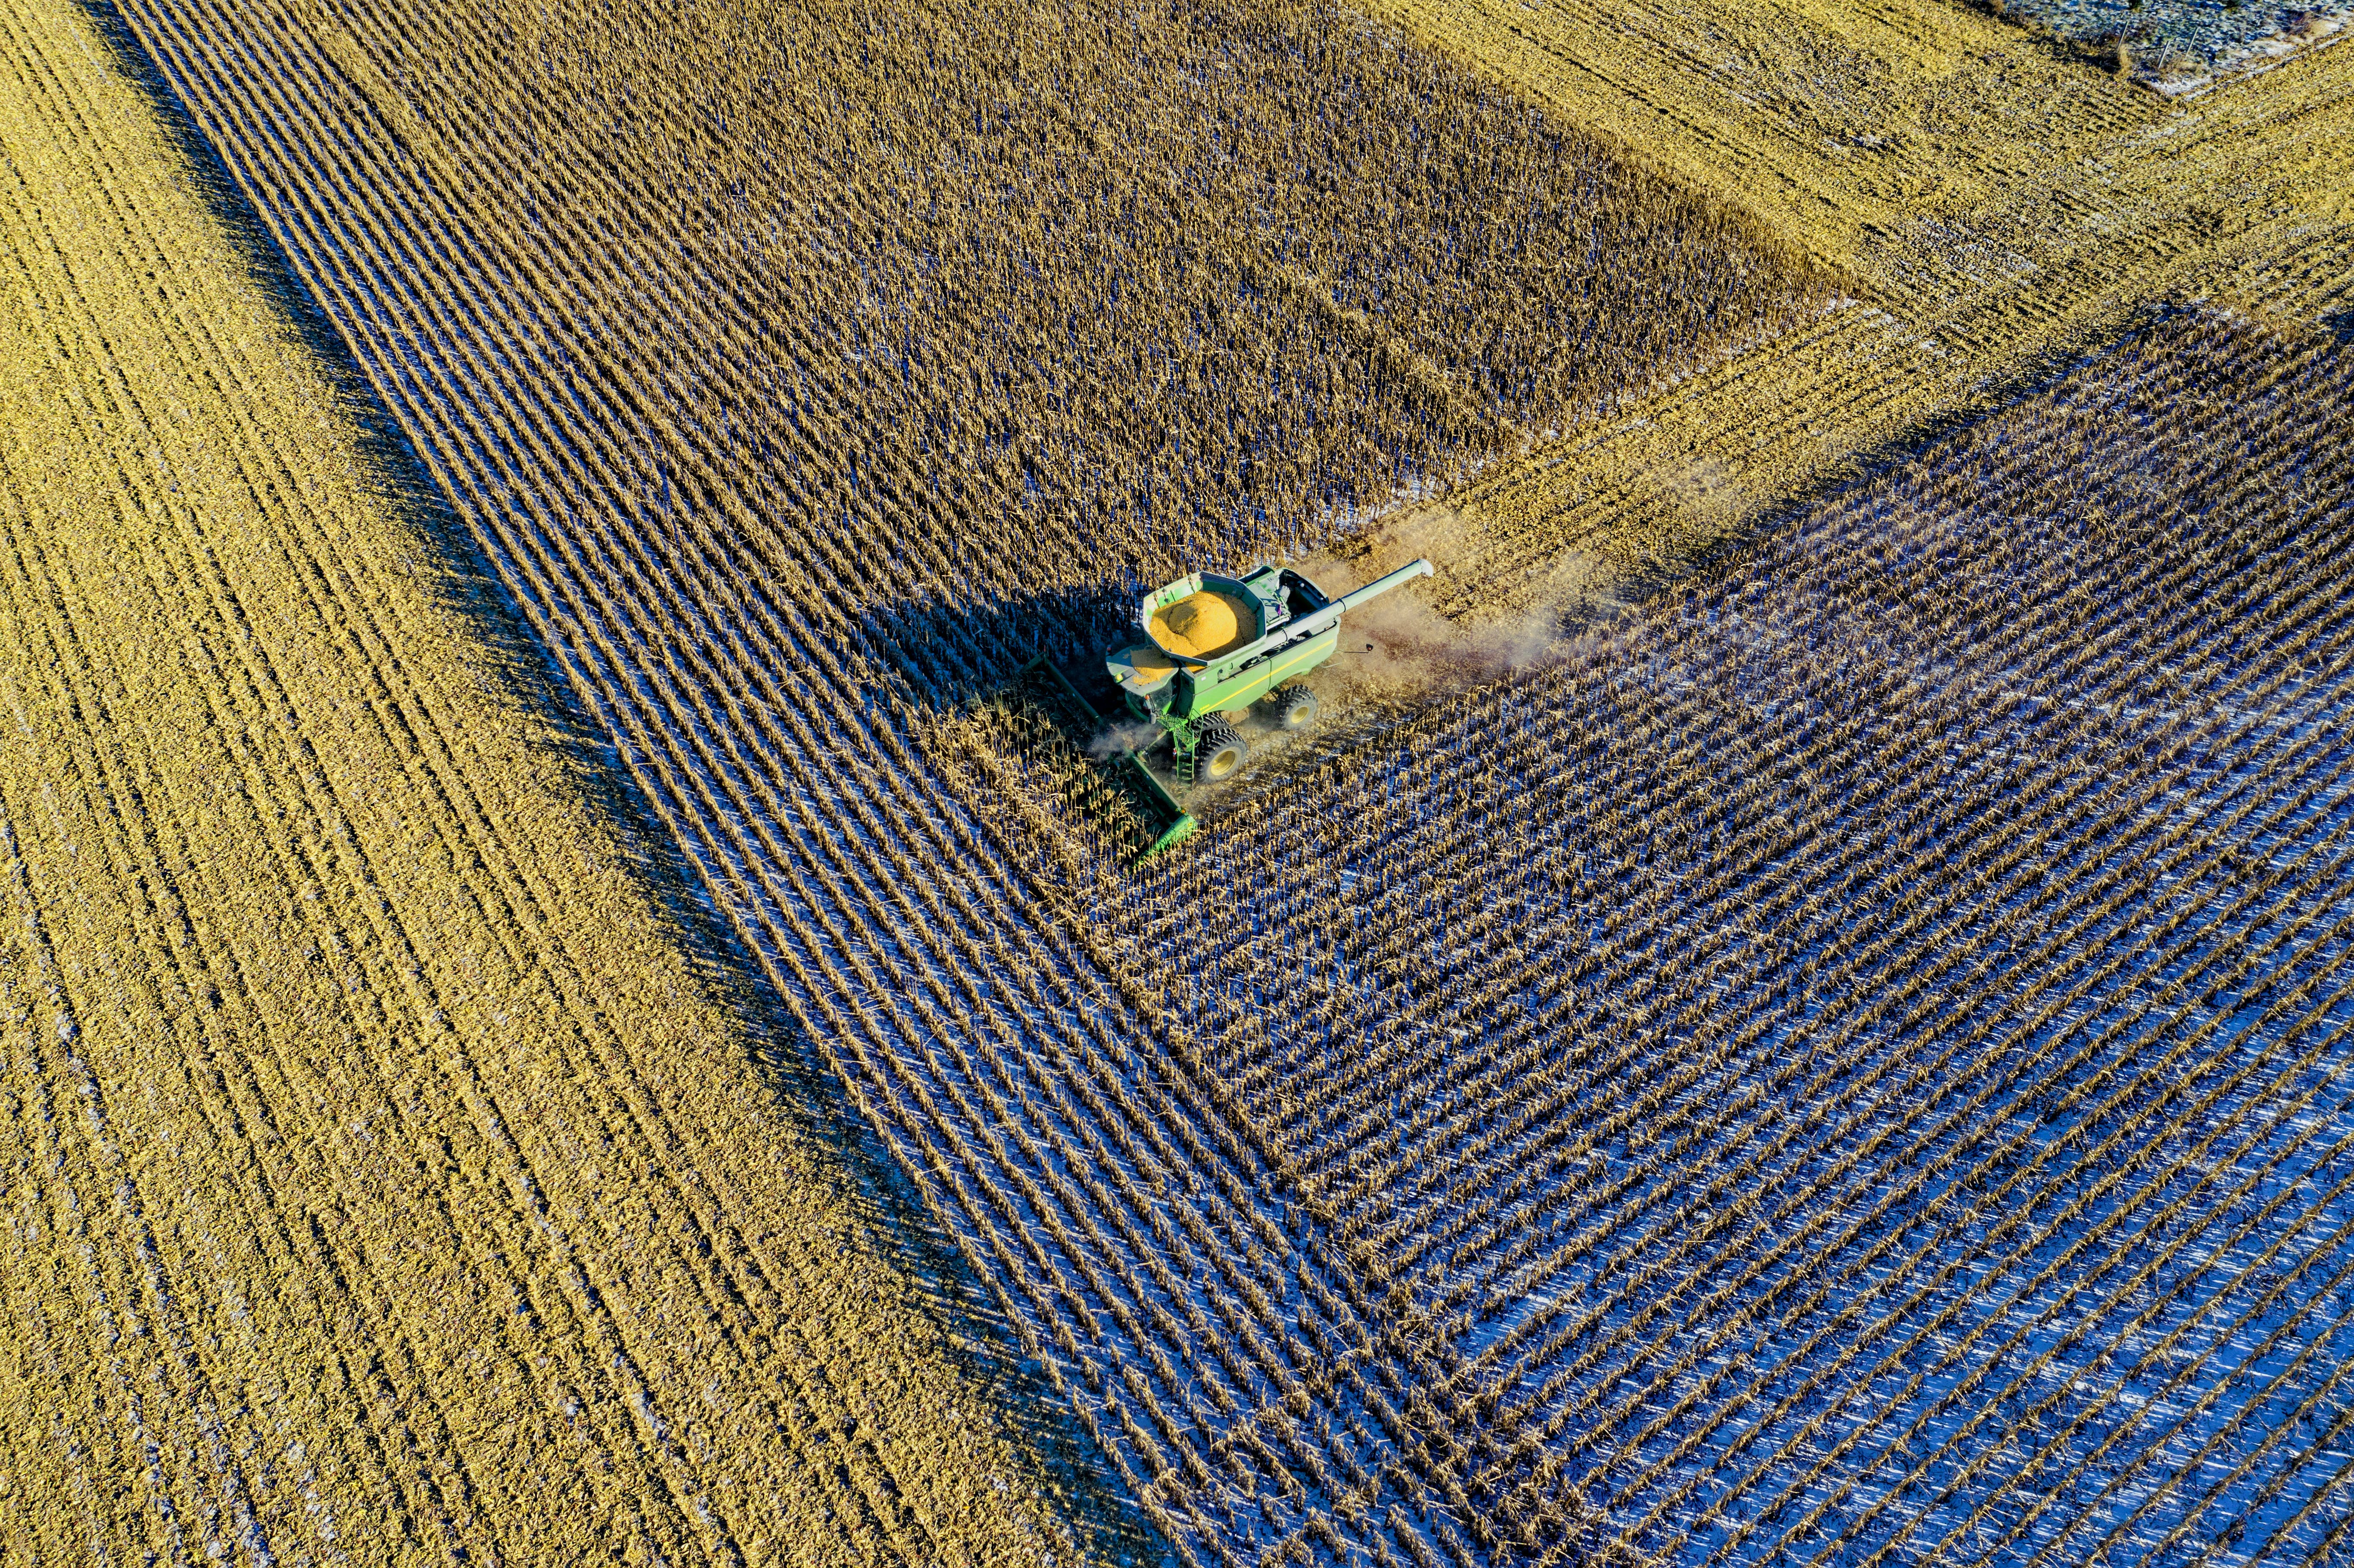 Aerial Photo of Green Milling Truck on Field Harvesting Crops